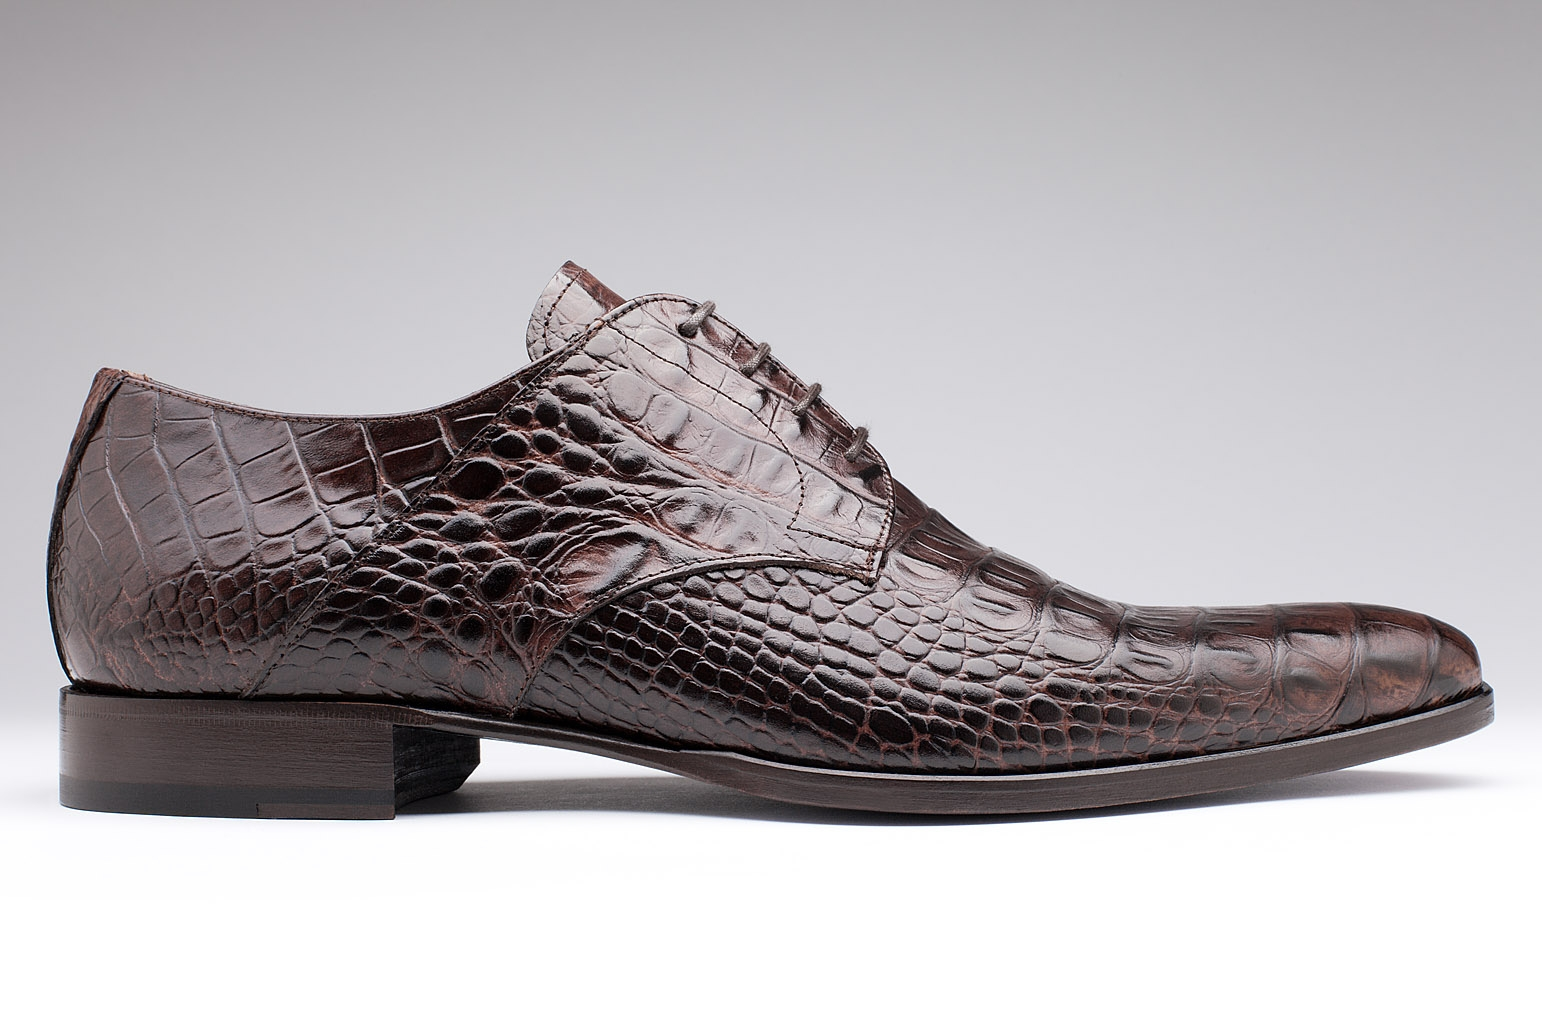 AMALFI Croco Marron